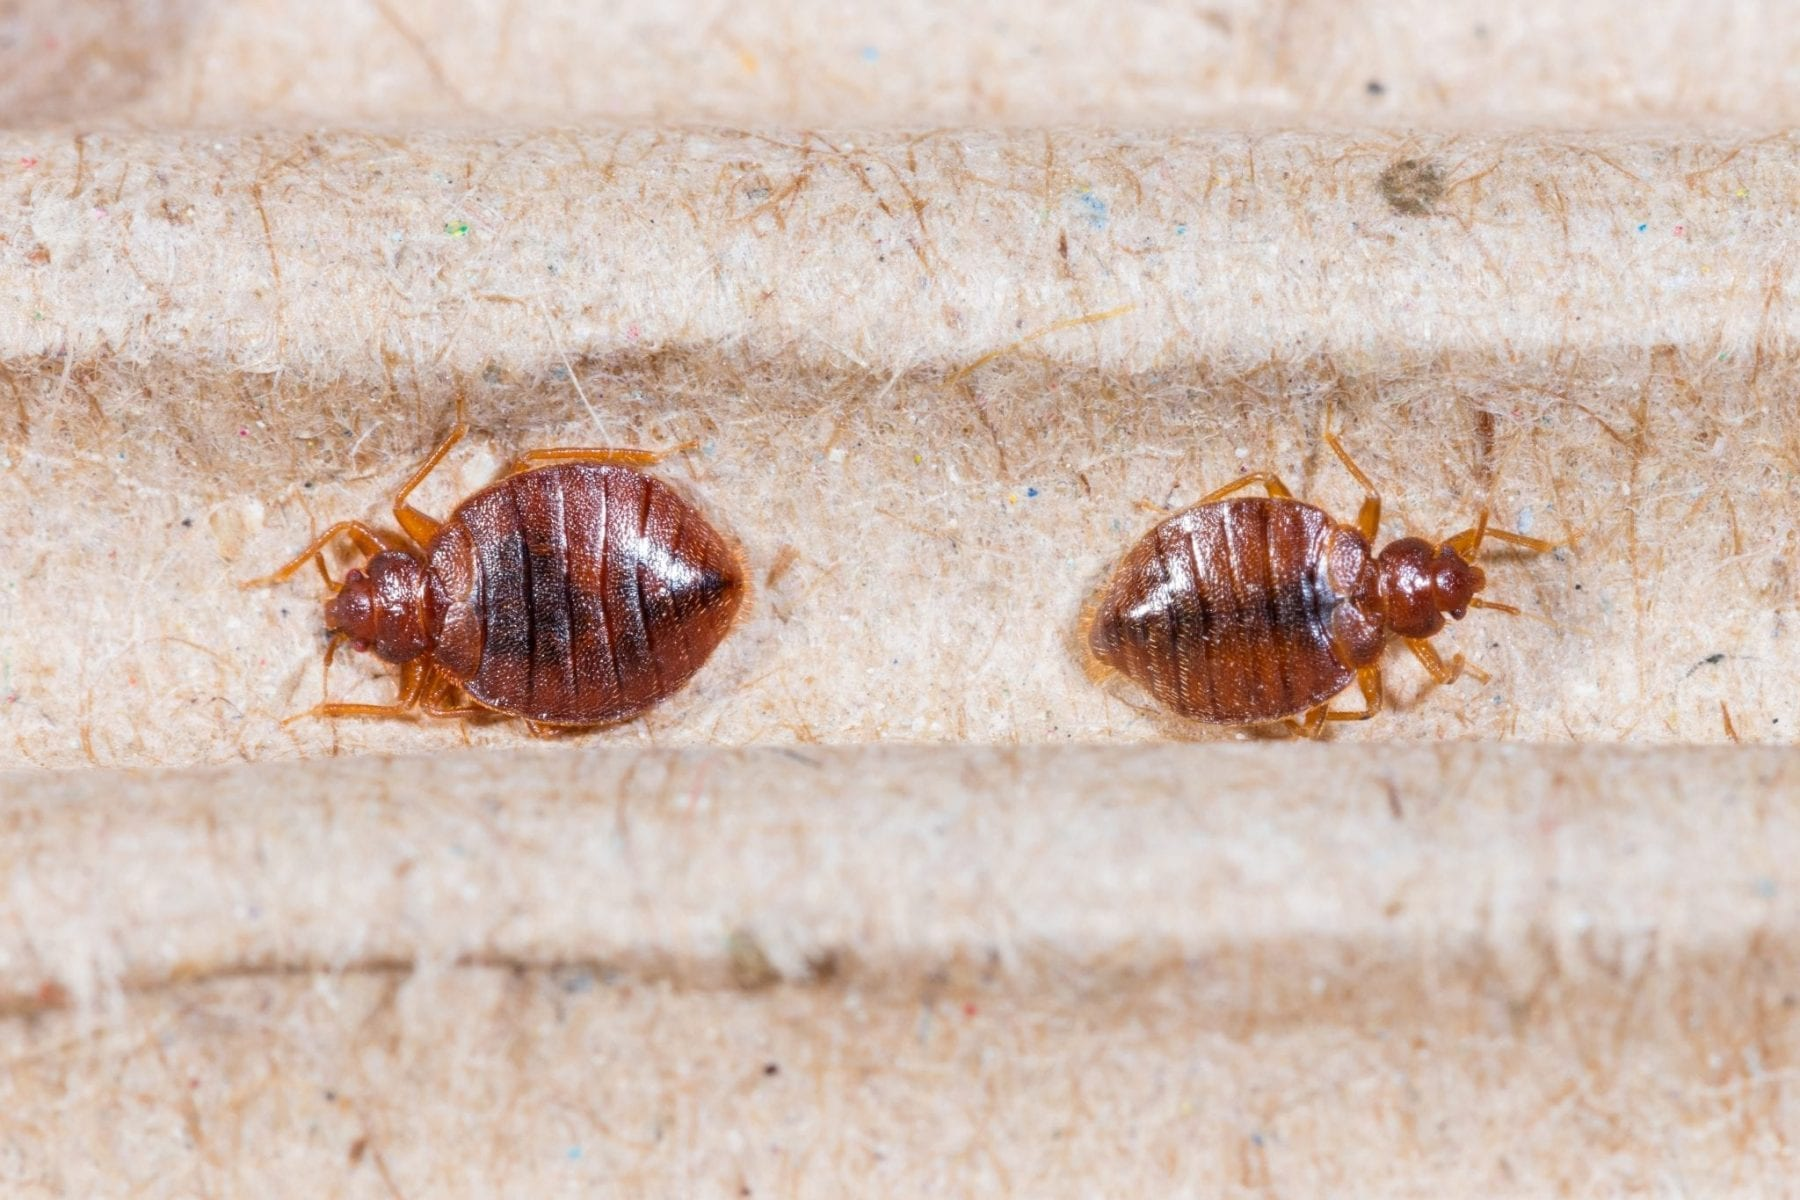 pictures of bed bugs - HD1920×1280